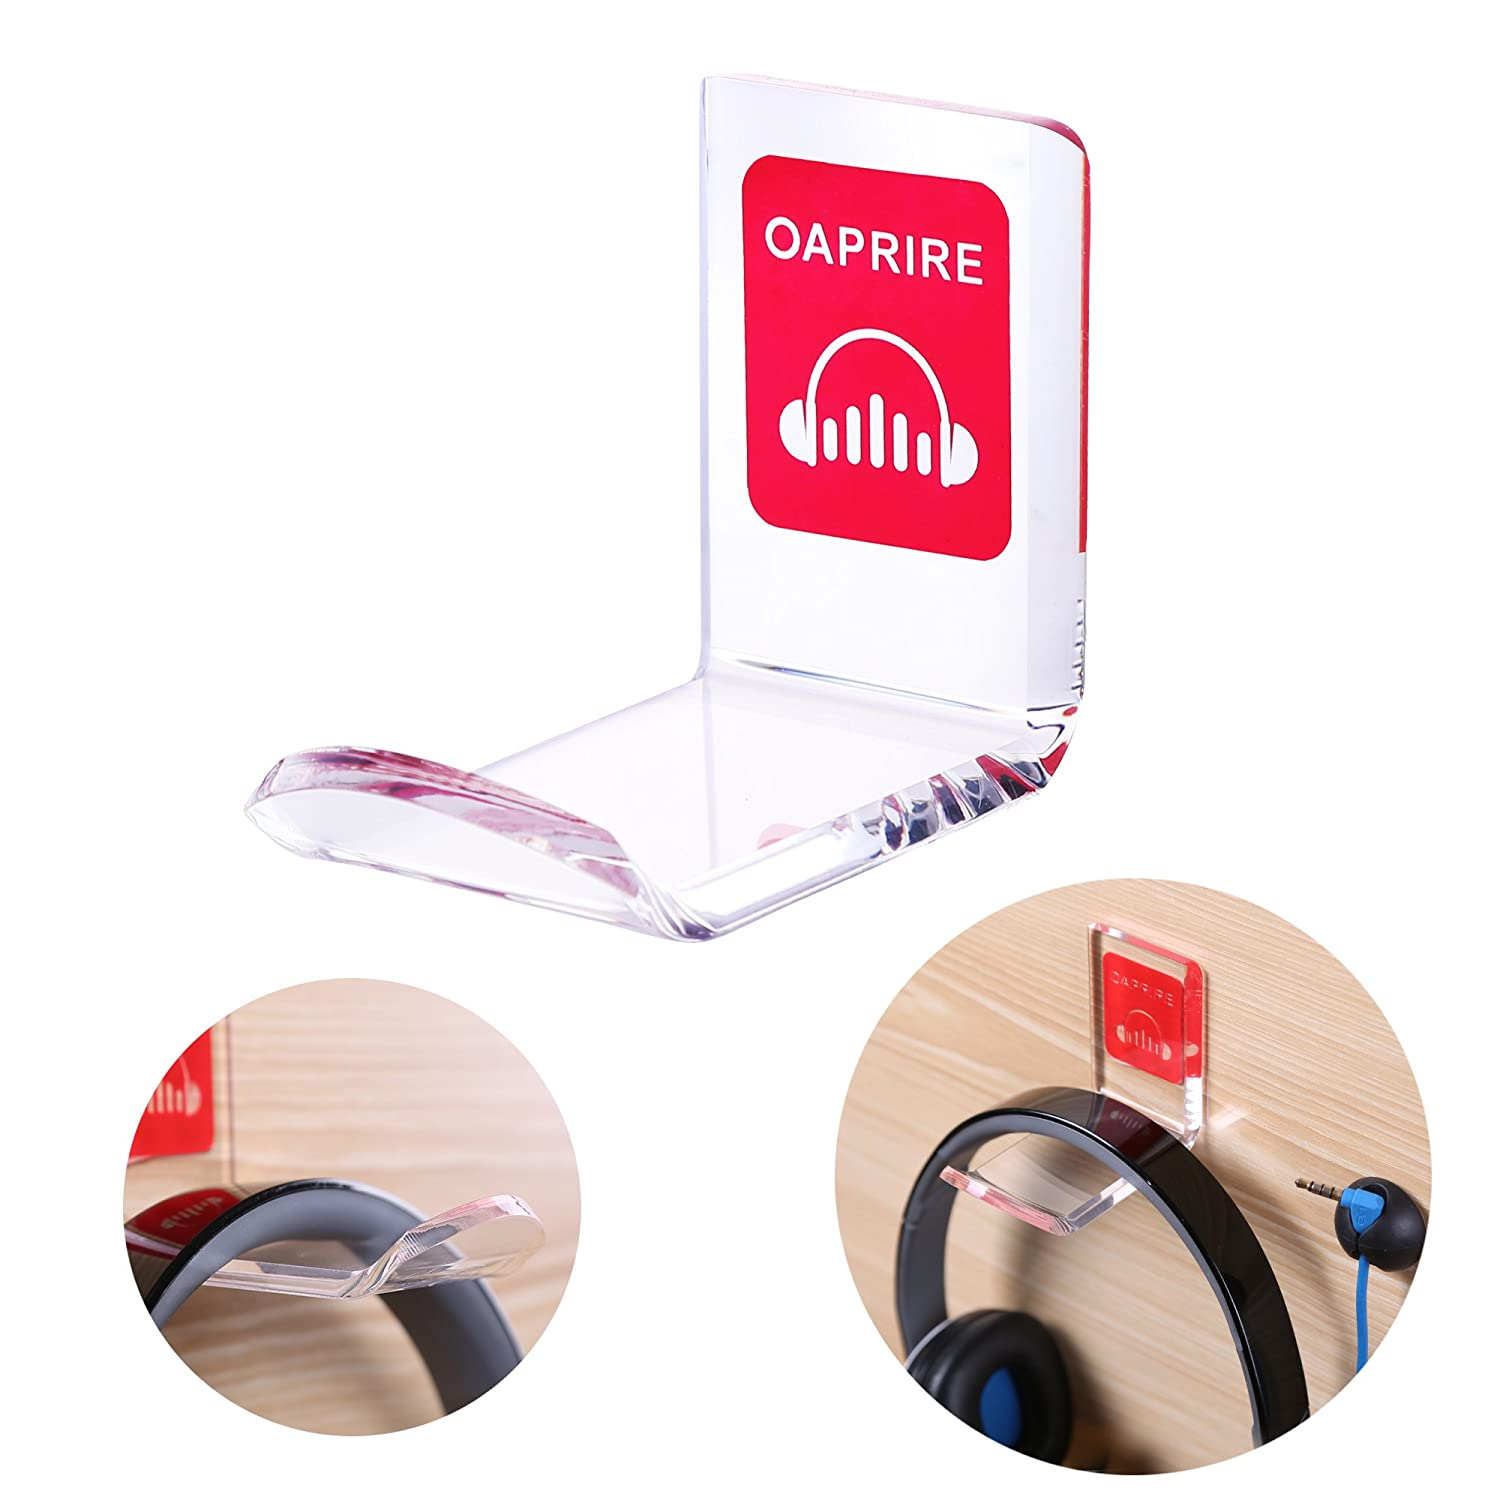 OAPRIRE Headphone Stand Holder Mount - Pack of 2 Transparent Acrylic Headset Stand, DIY Headphone Hanger Hook with Cable Clips - Red